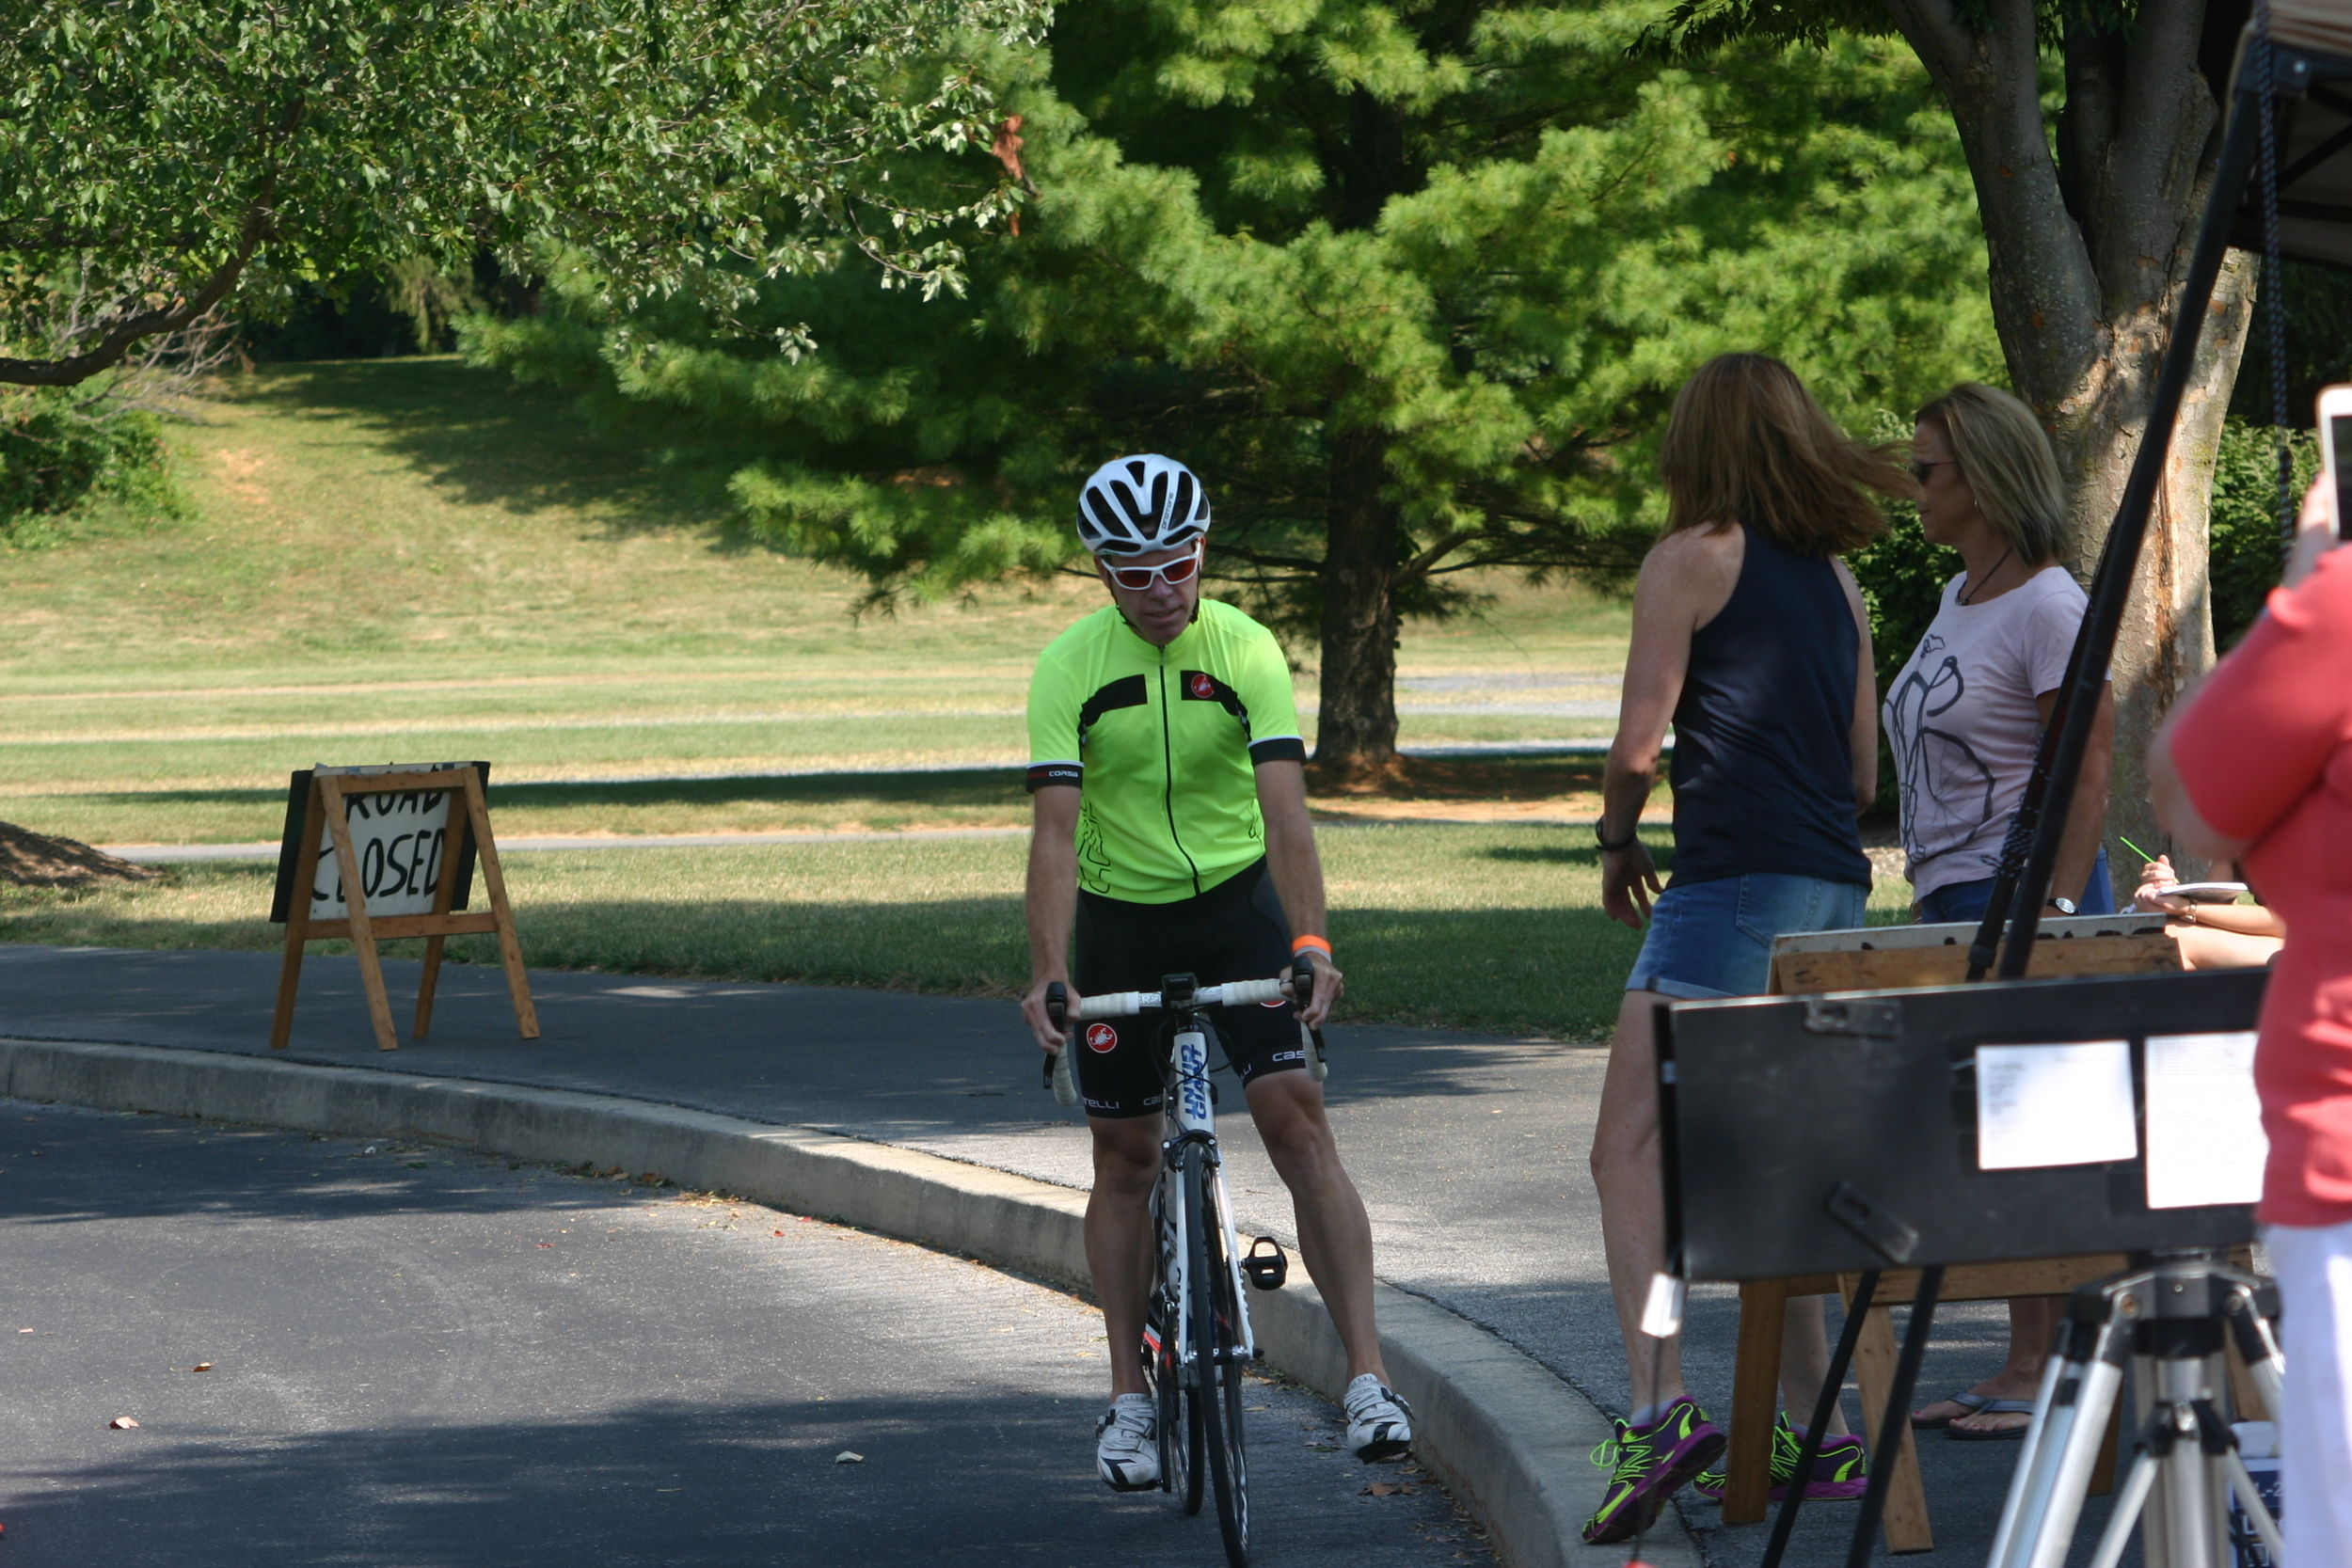 First rider across the line. Photo courtesy Chuck Rudy.